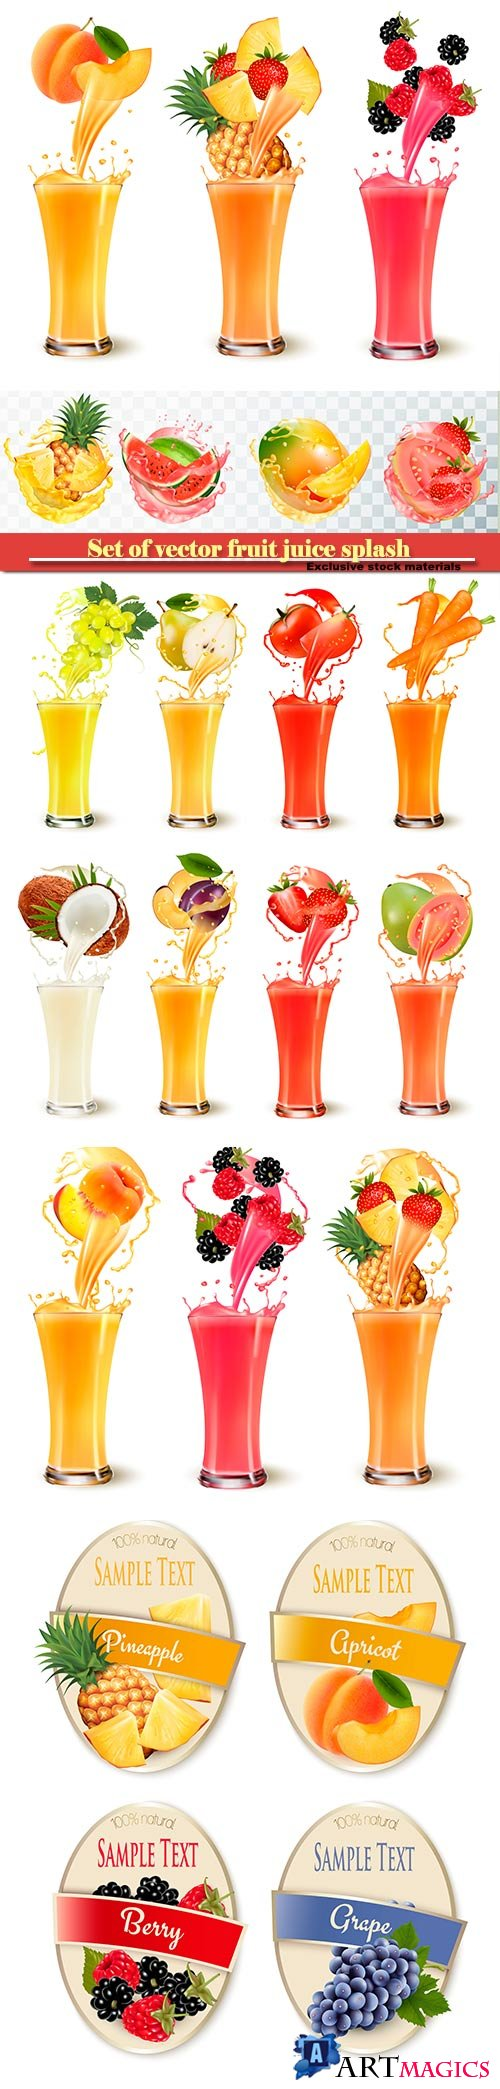 Set of vector fruit juice splash in a glass, pineapple, strawberry, raspberry and blackberry